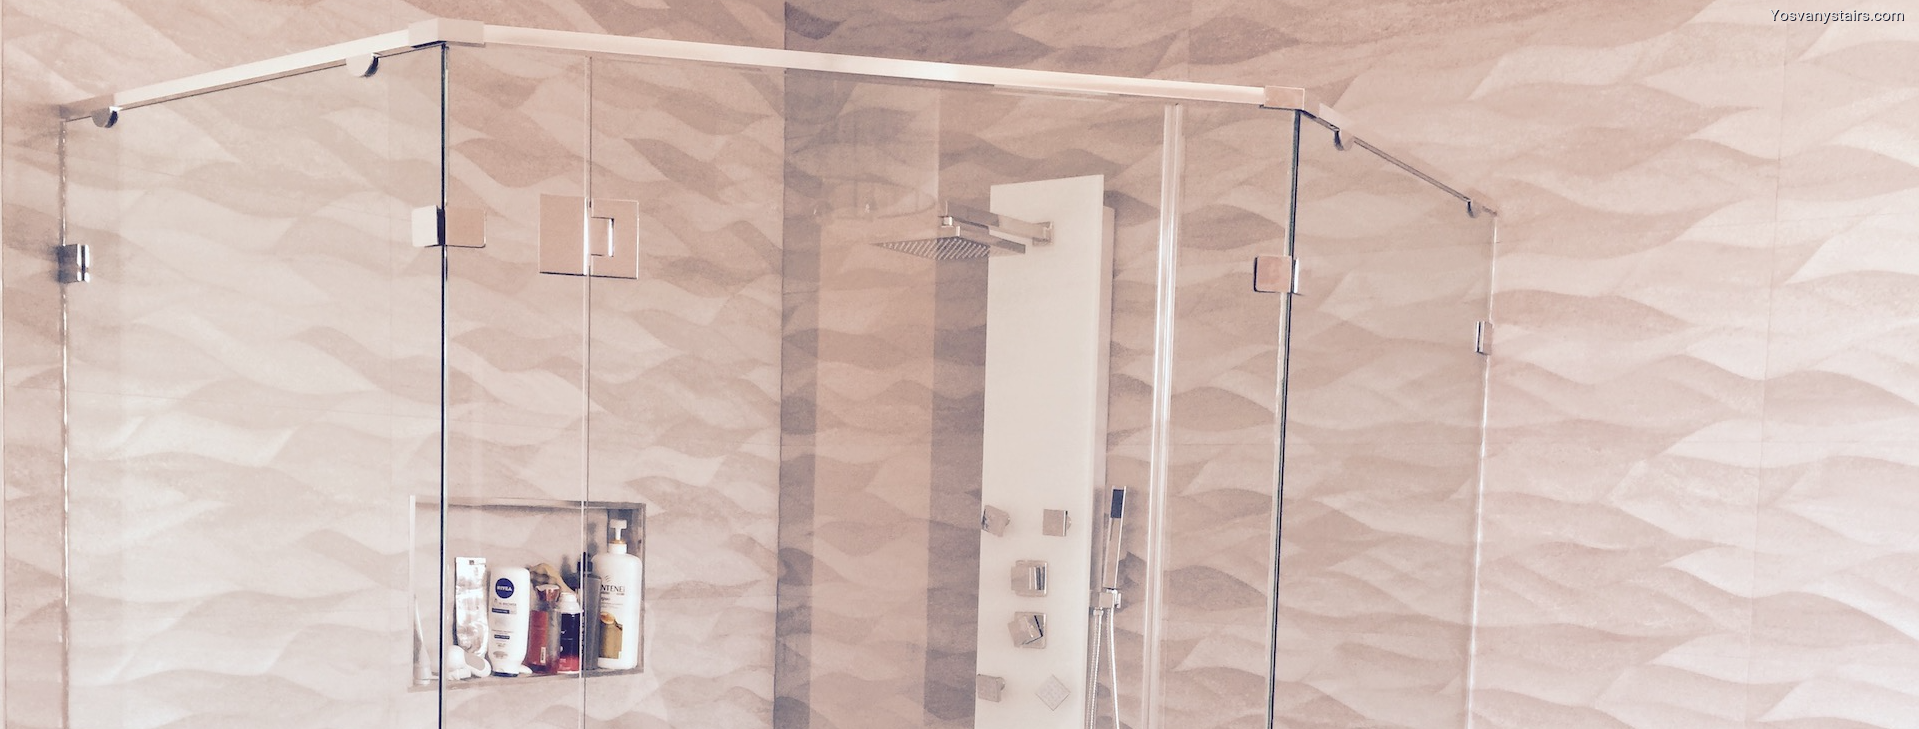 Shower Glass Door Installation In Miami